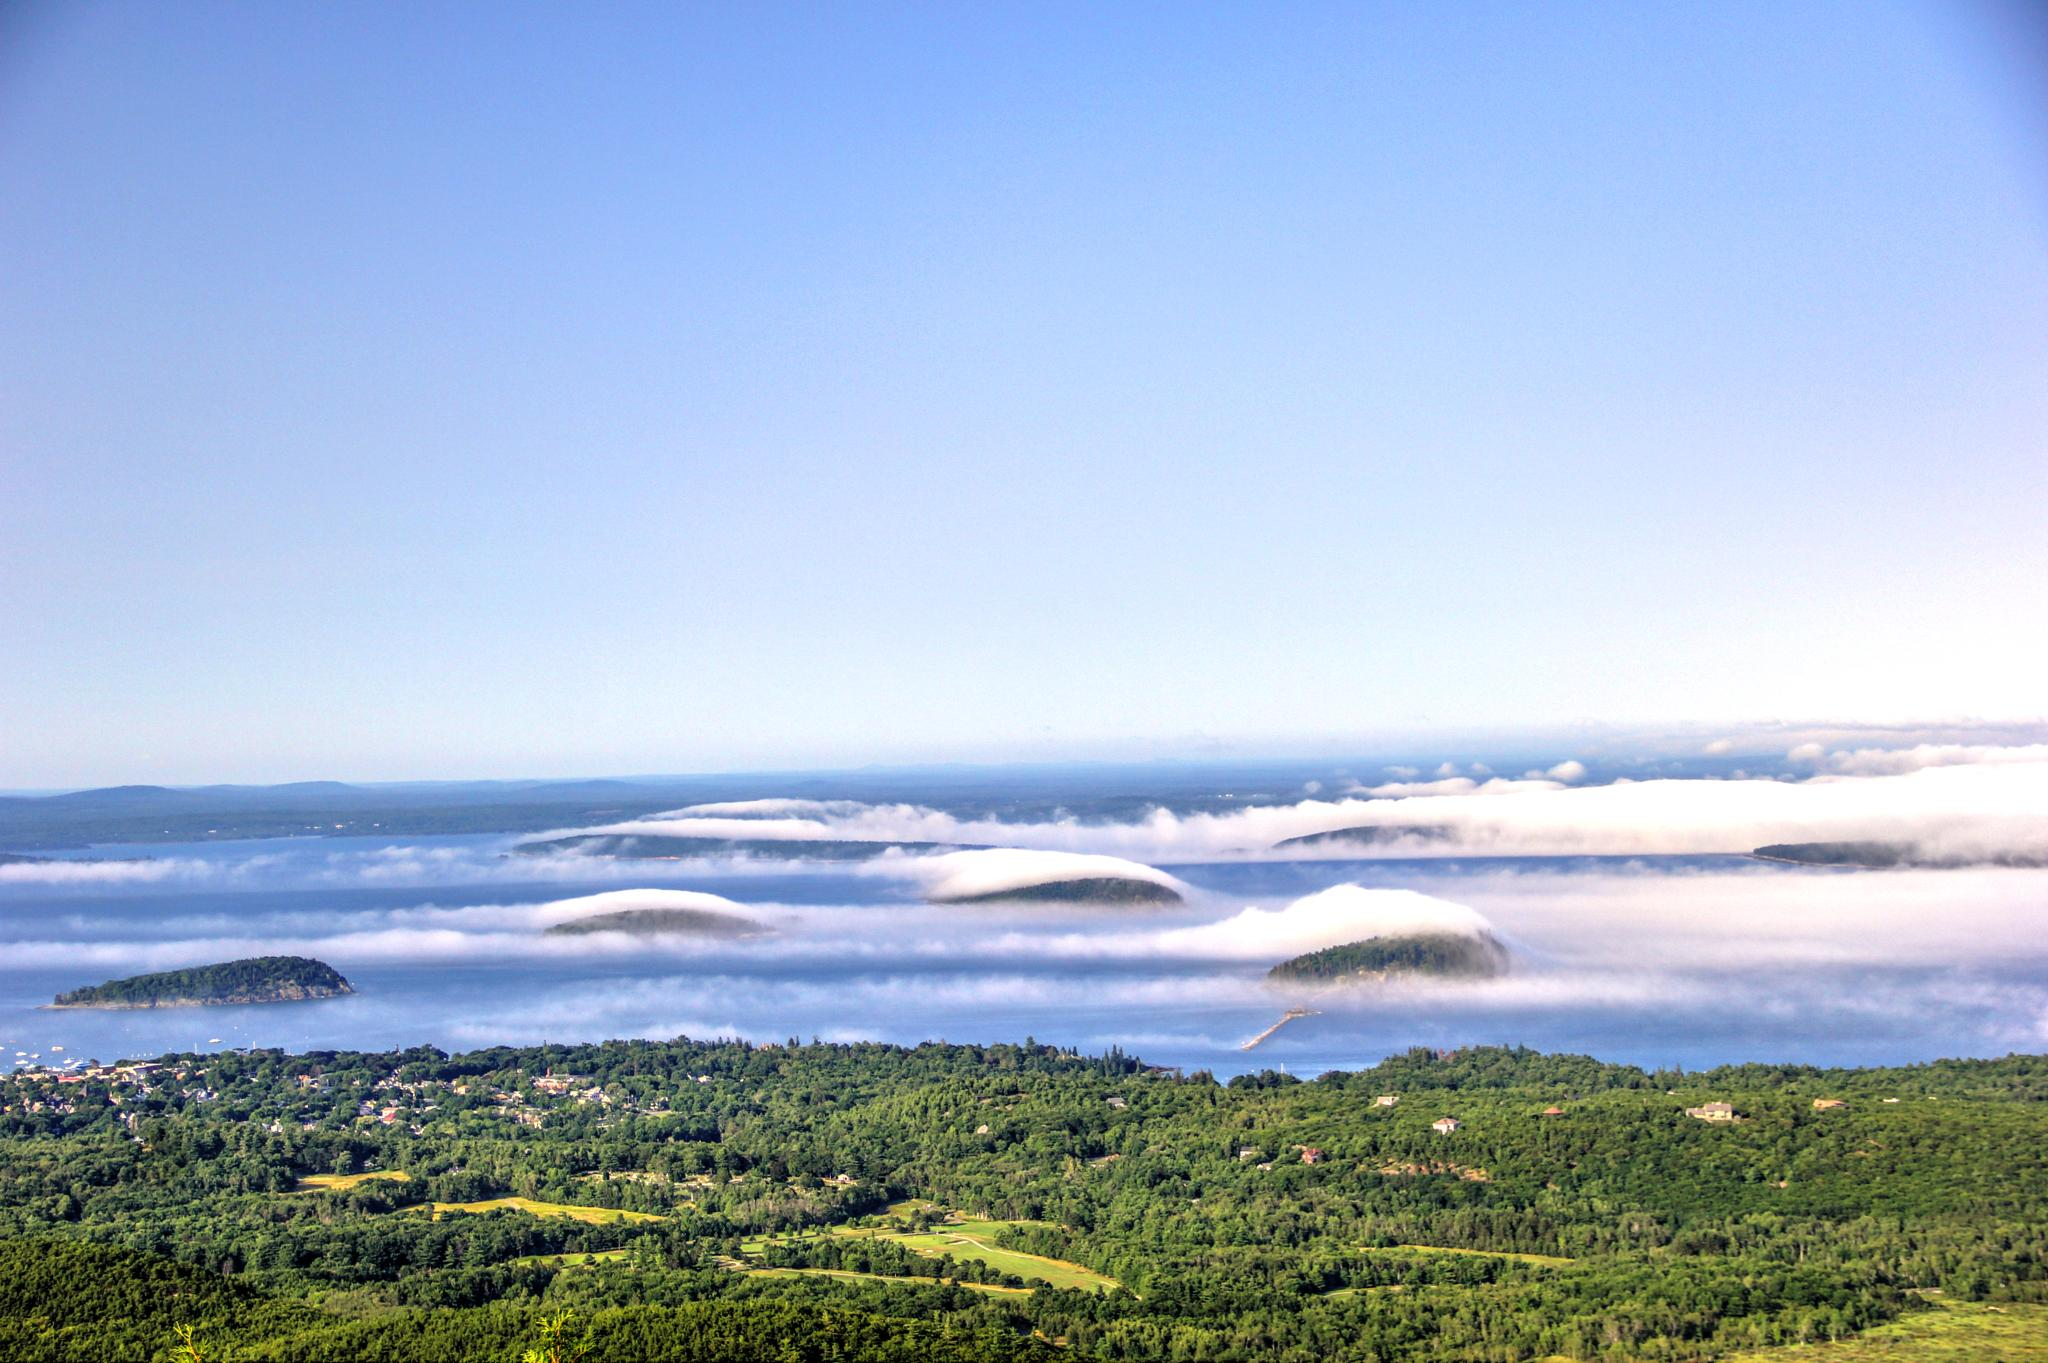 Islands in Fog by Peggy Berger